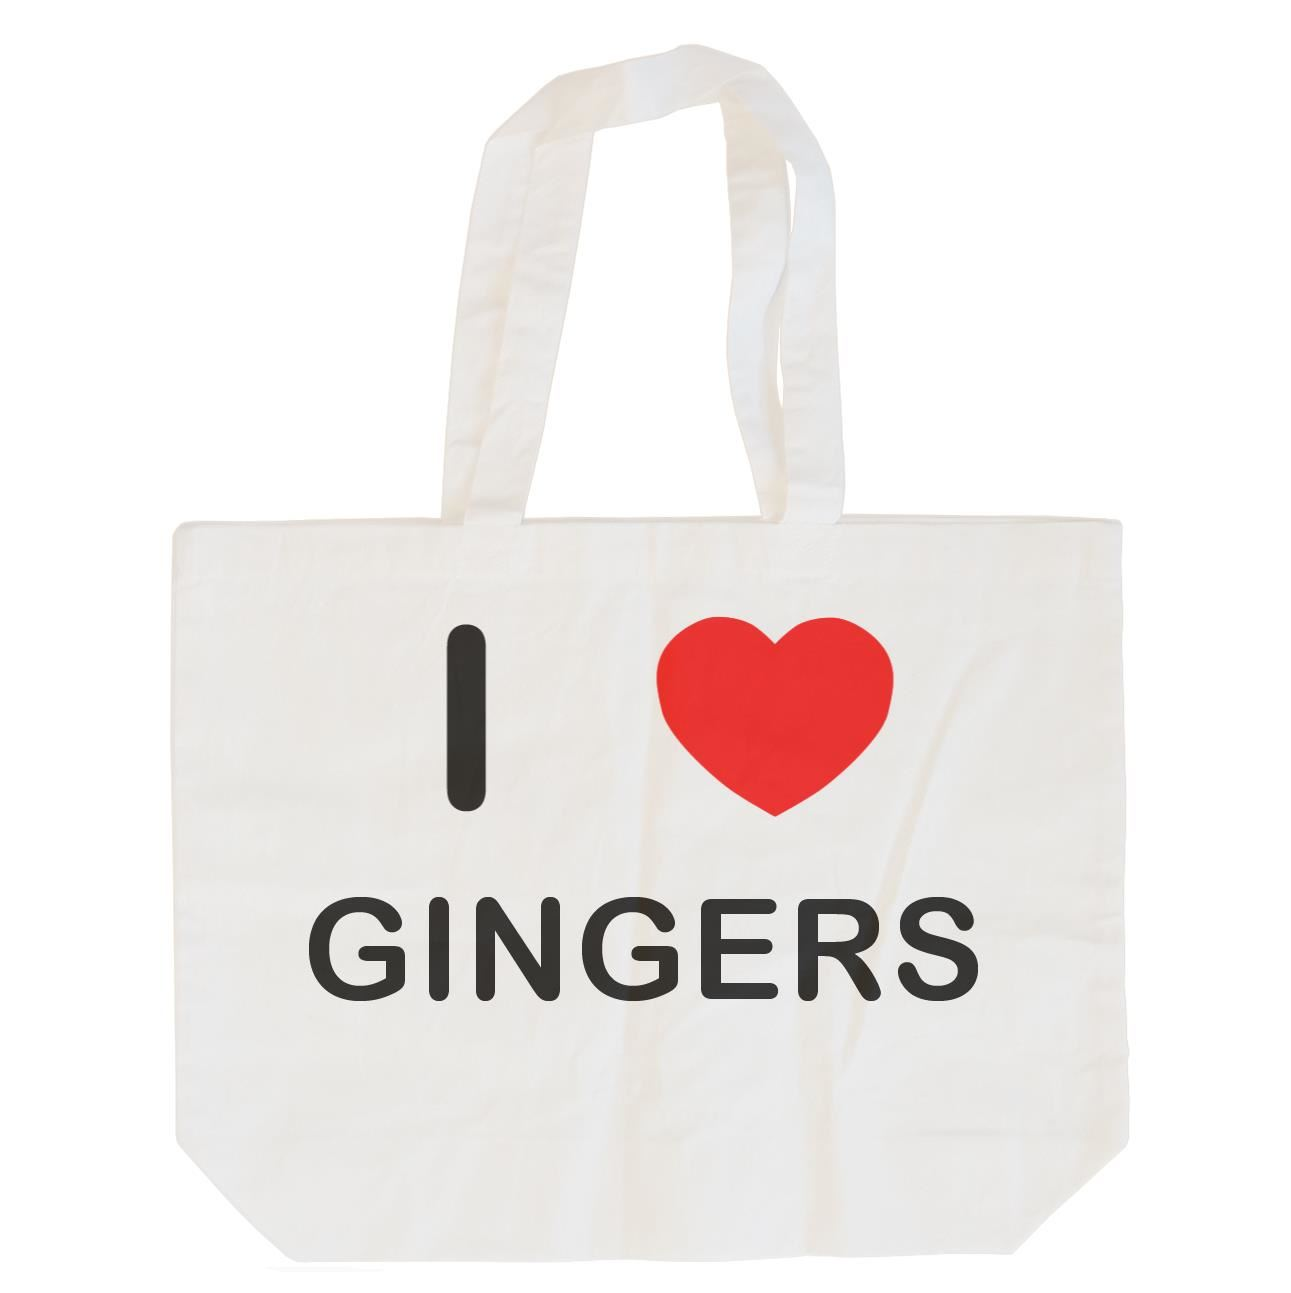 I Love Gingers - Cotton Bag | Size choice Tote, Shopper or Sling